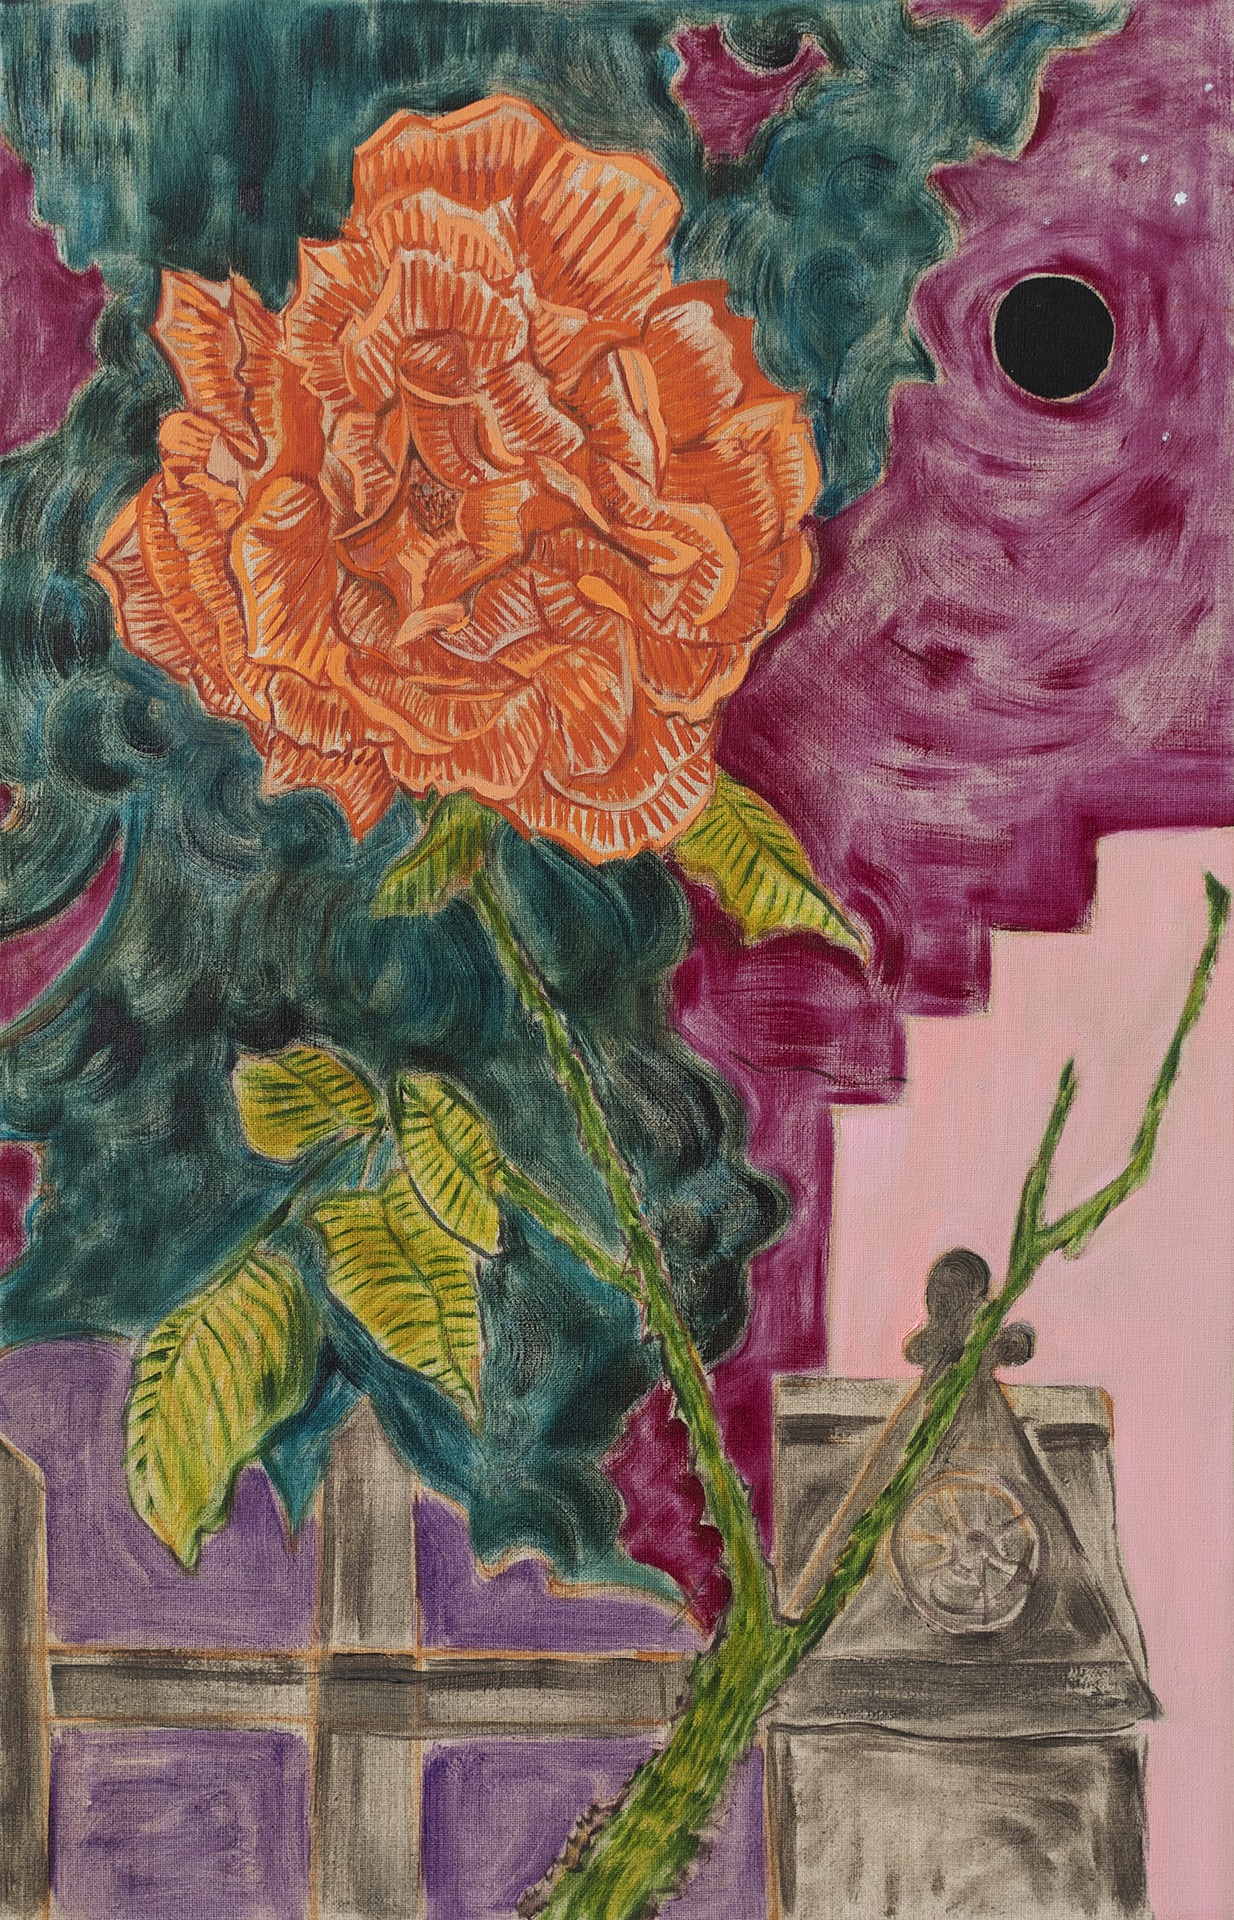 A painting by Hayley Barker titled Lorimer Street Rose New Moon, dated 2021.